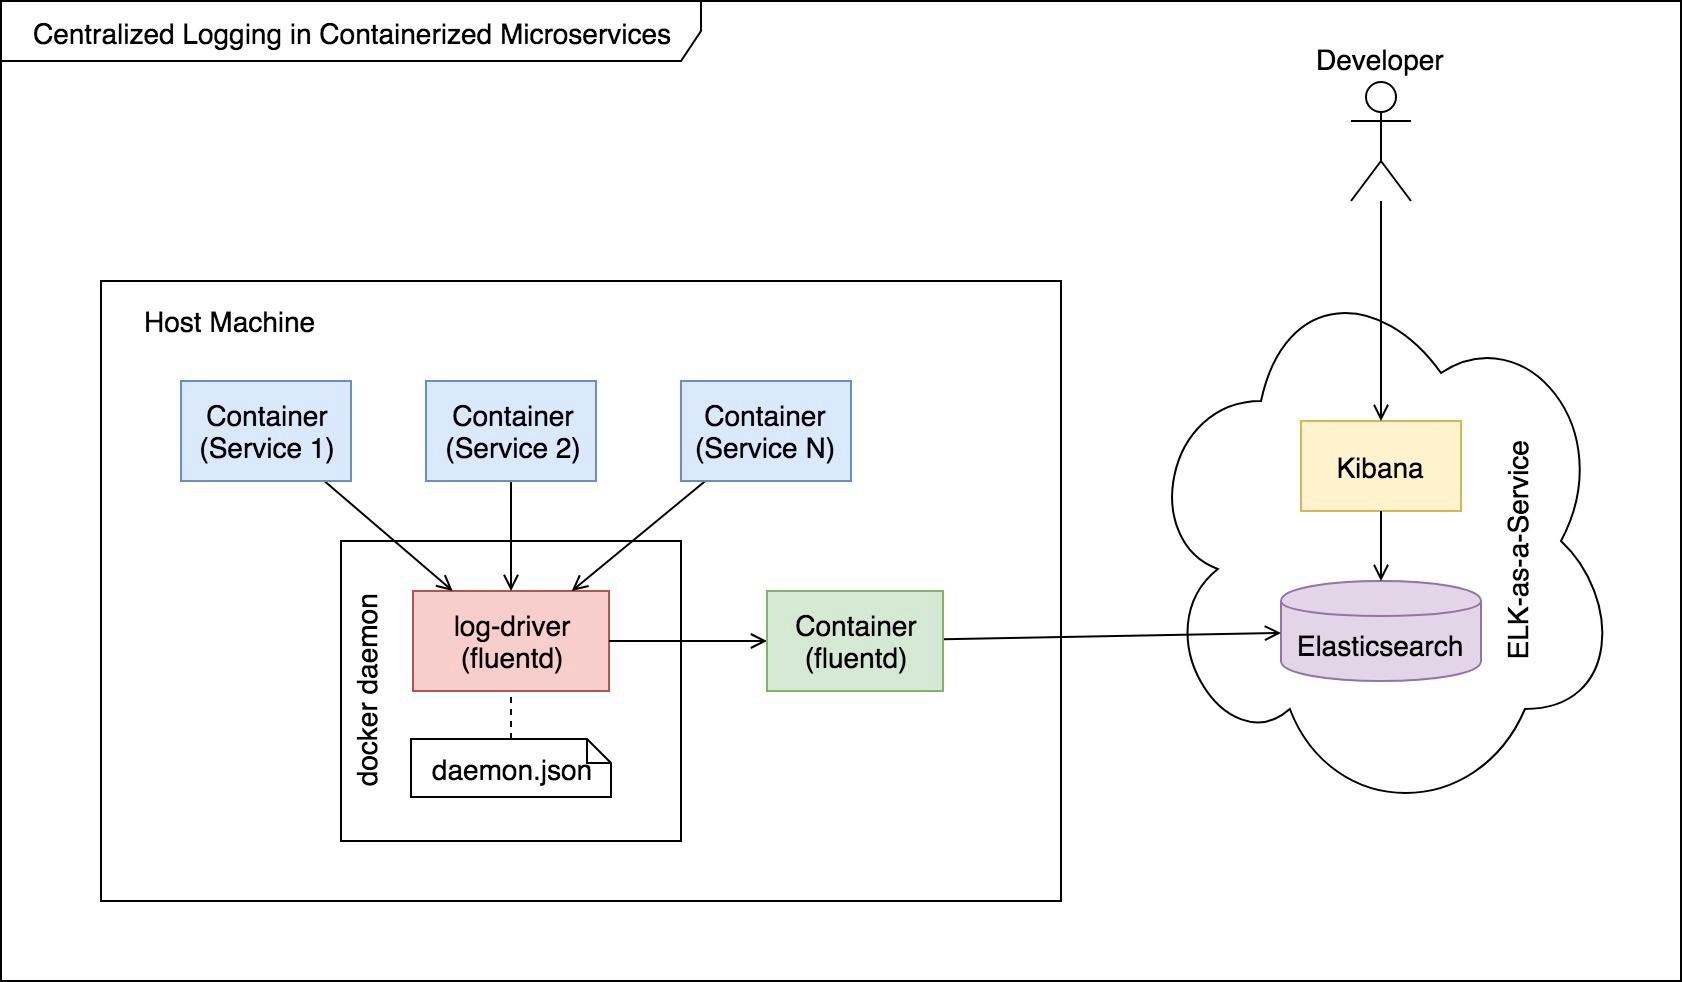 Monitoring containerized microservices with a centralized logging